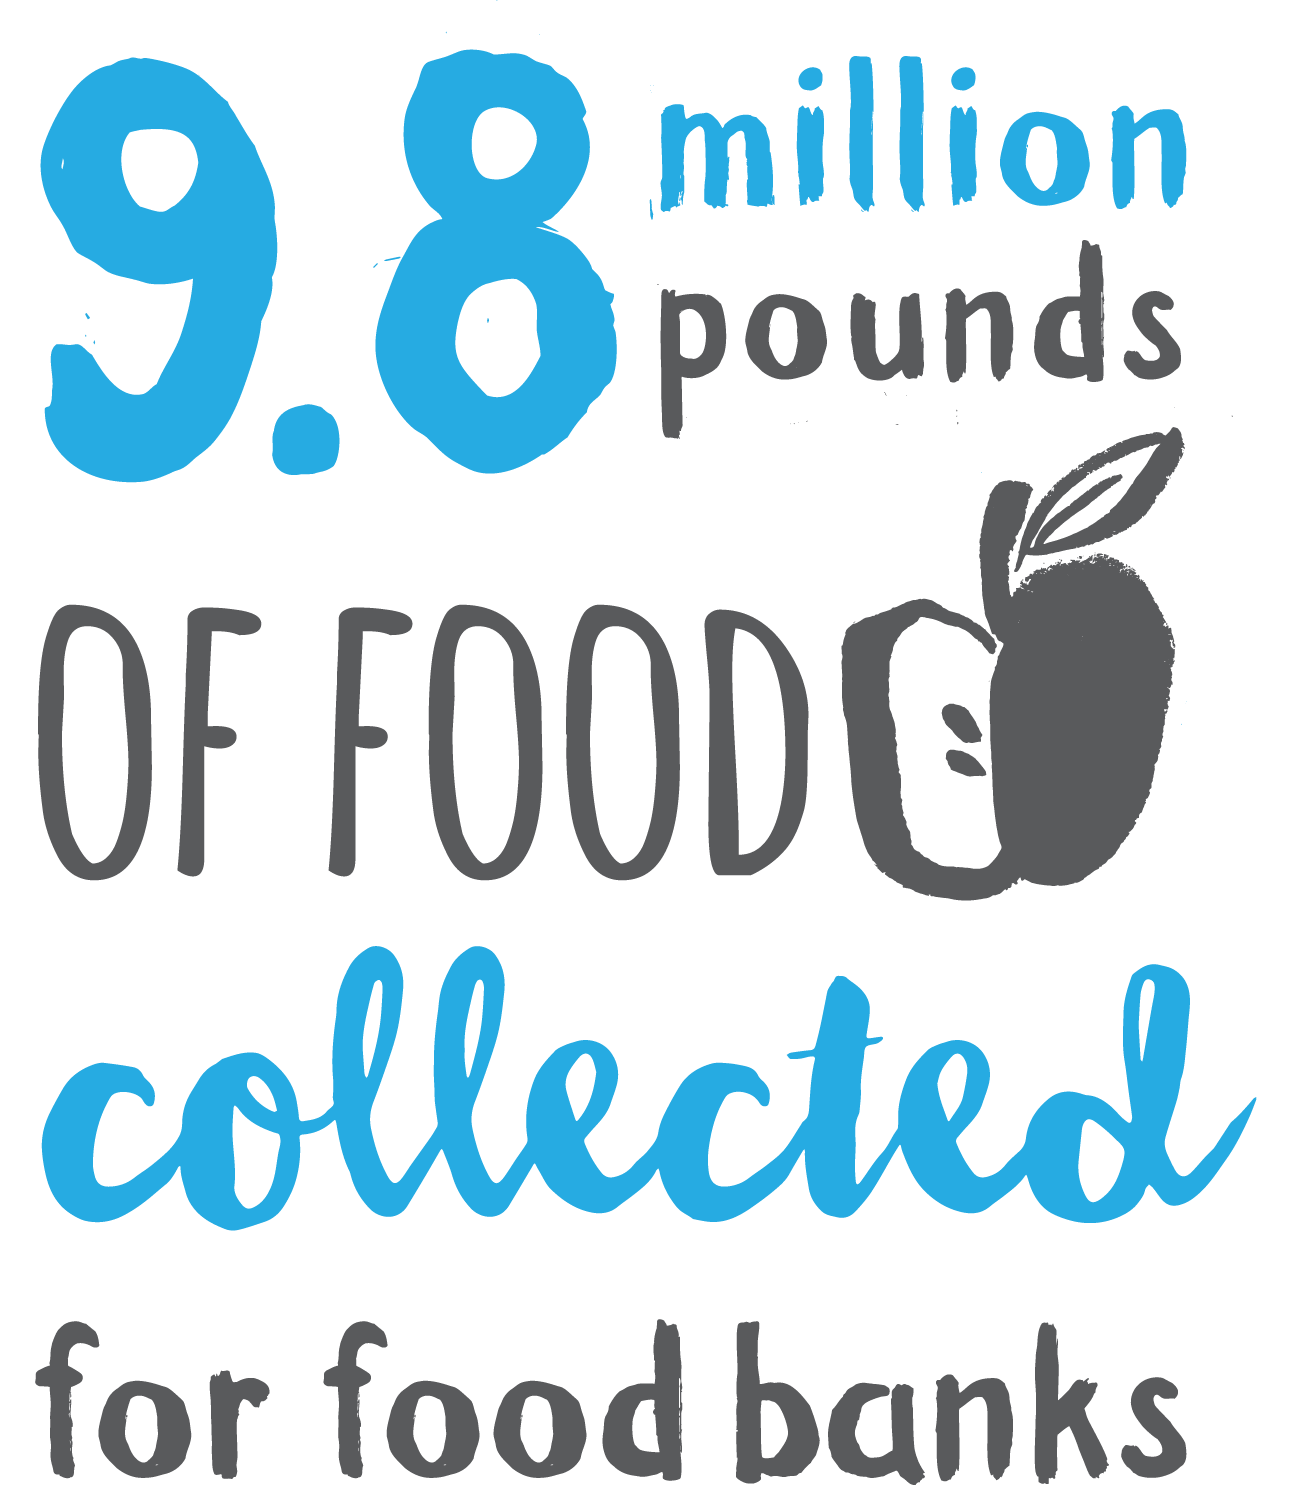 9.8 million pounds of food collected for food banks